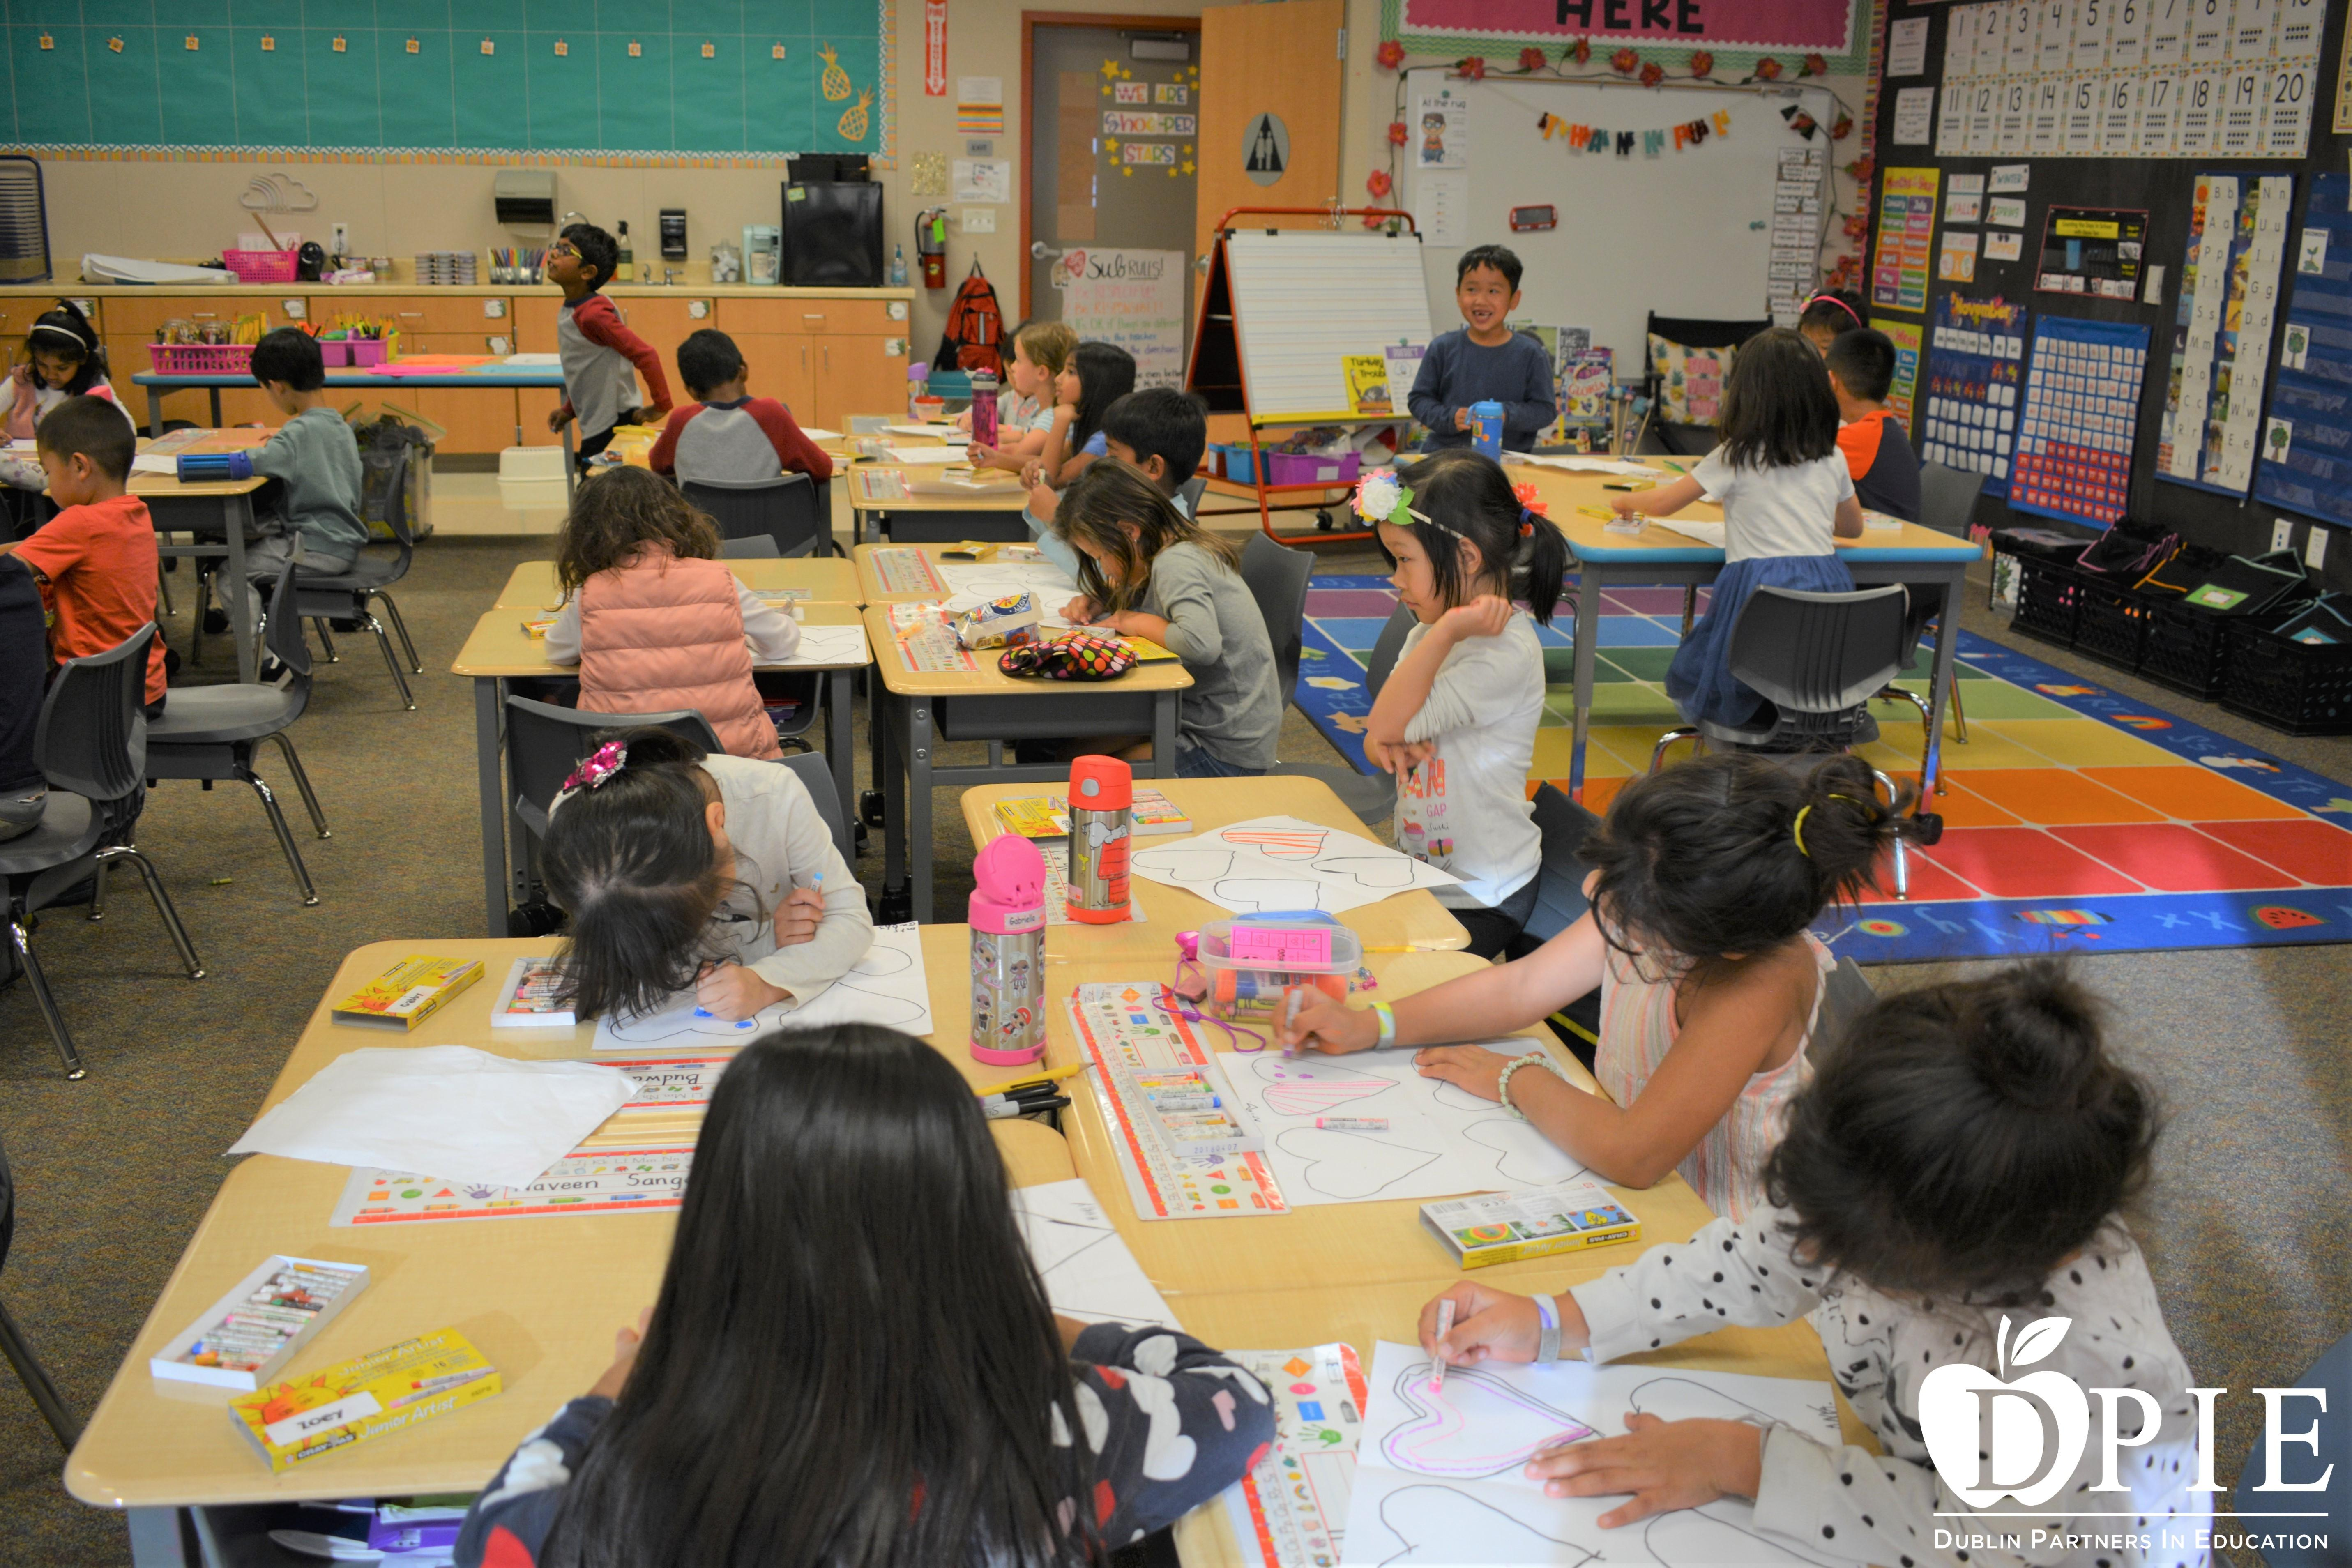 Ms McCrory's Oodles of Doodles class at Amador Elementary